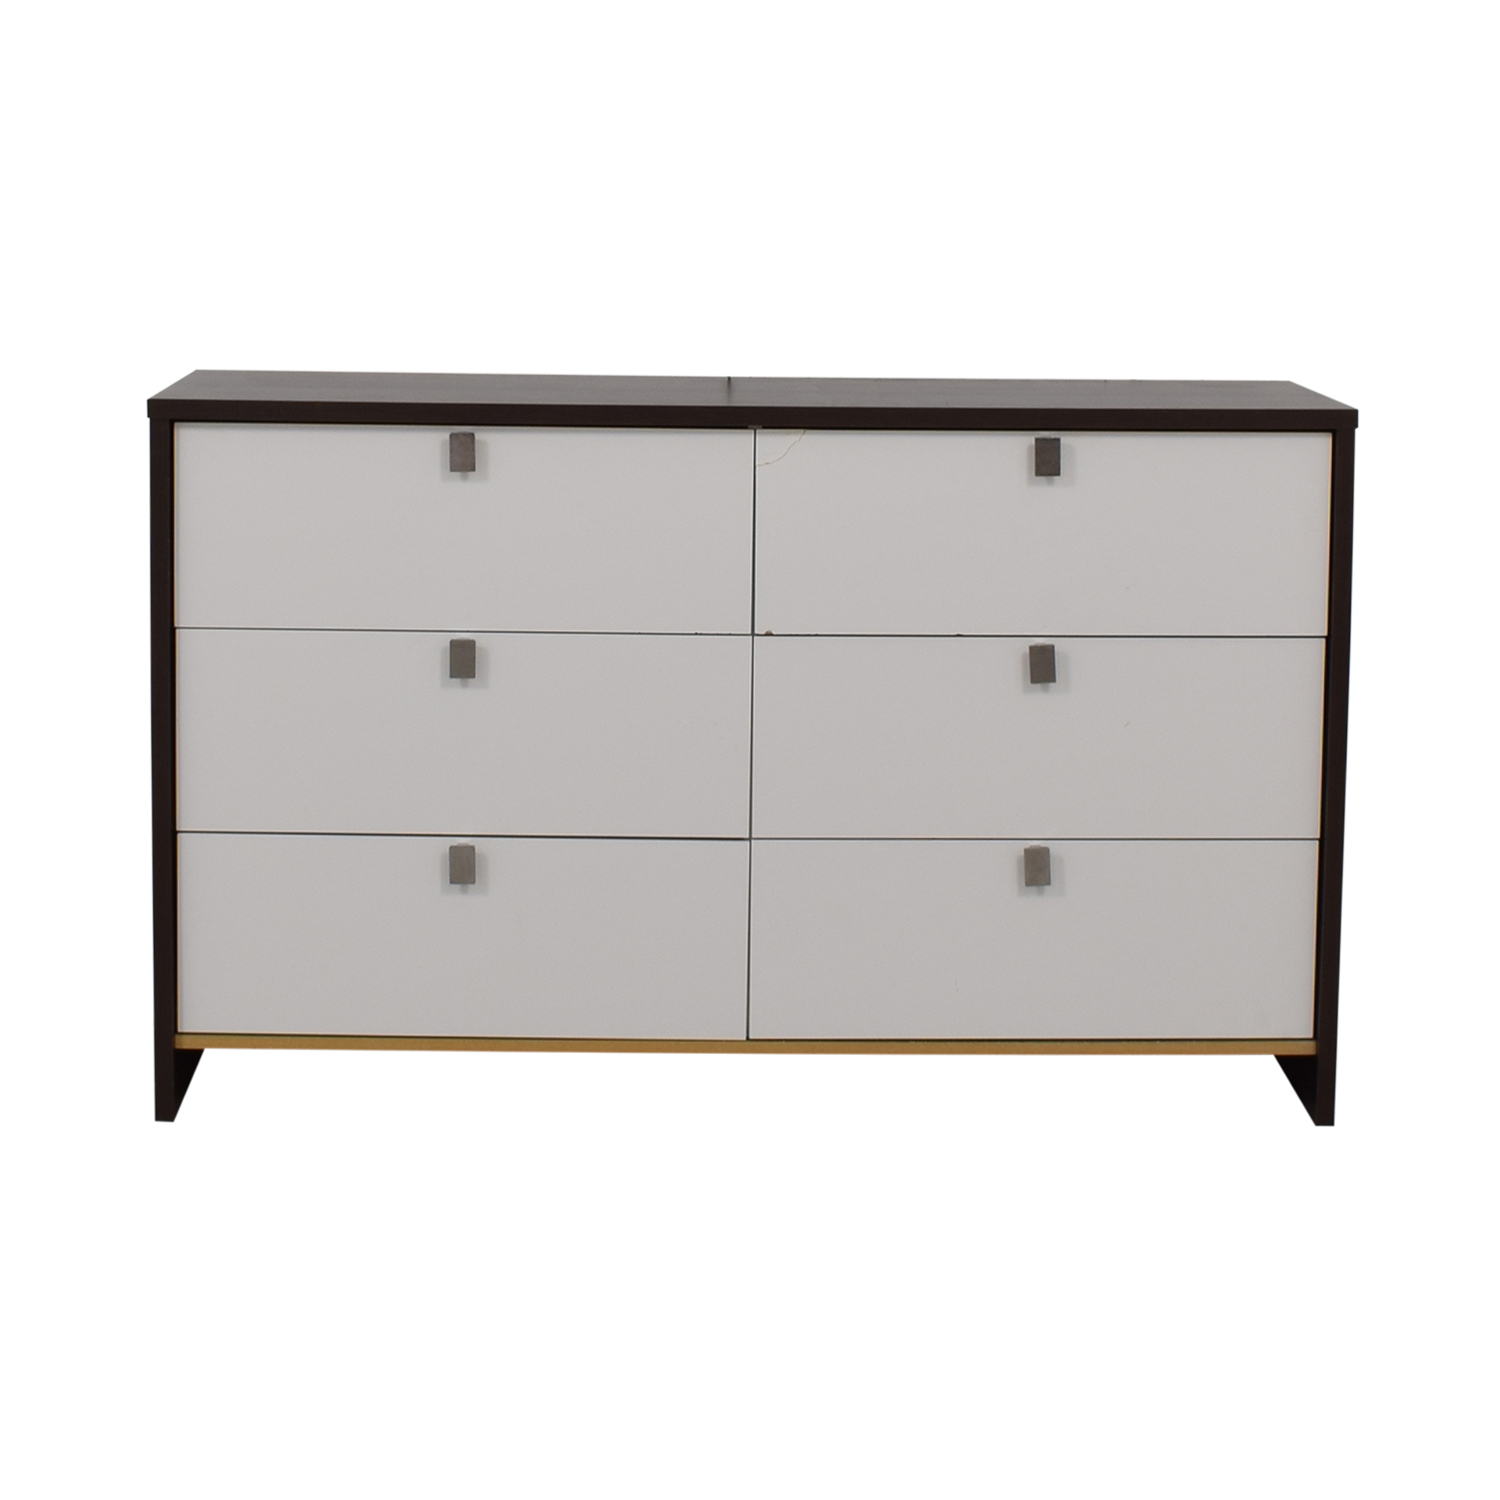 buy South Shore Cookie 6 Drawer Double Dresser South Shore Furniture Storage